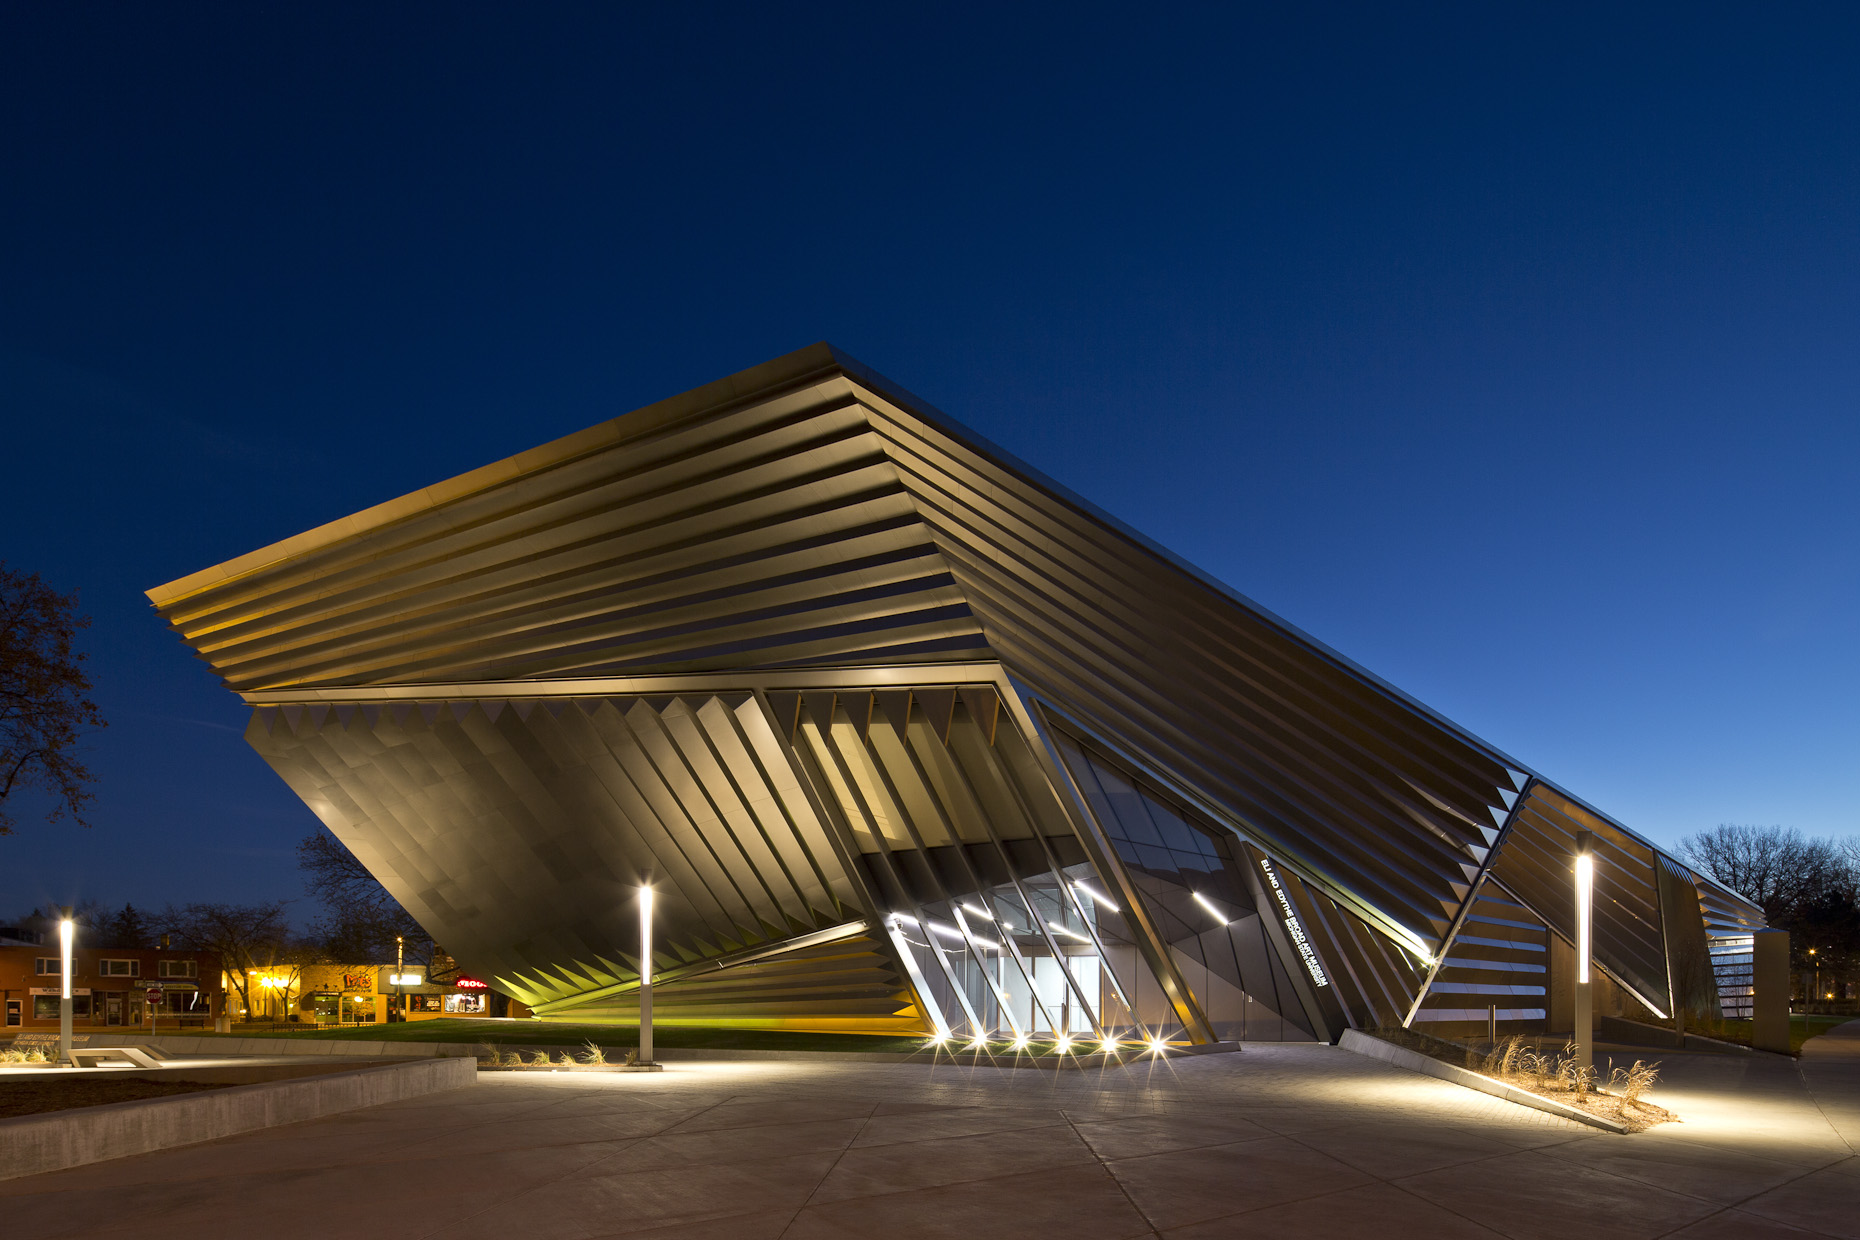 Eli& Edythe Broad Art Museum at Michigan State University | Zaha Hadid Architects